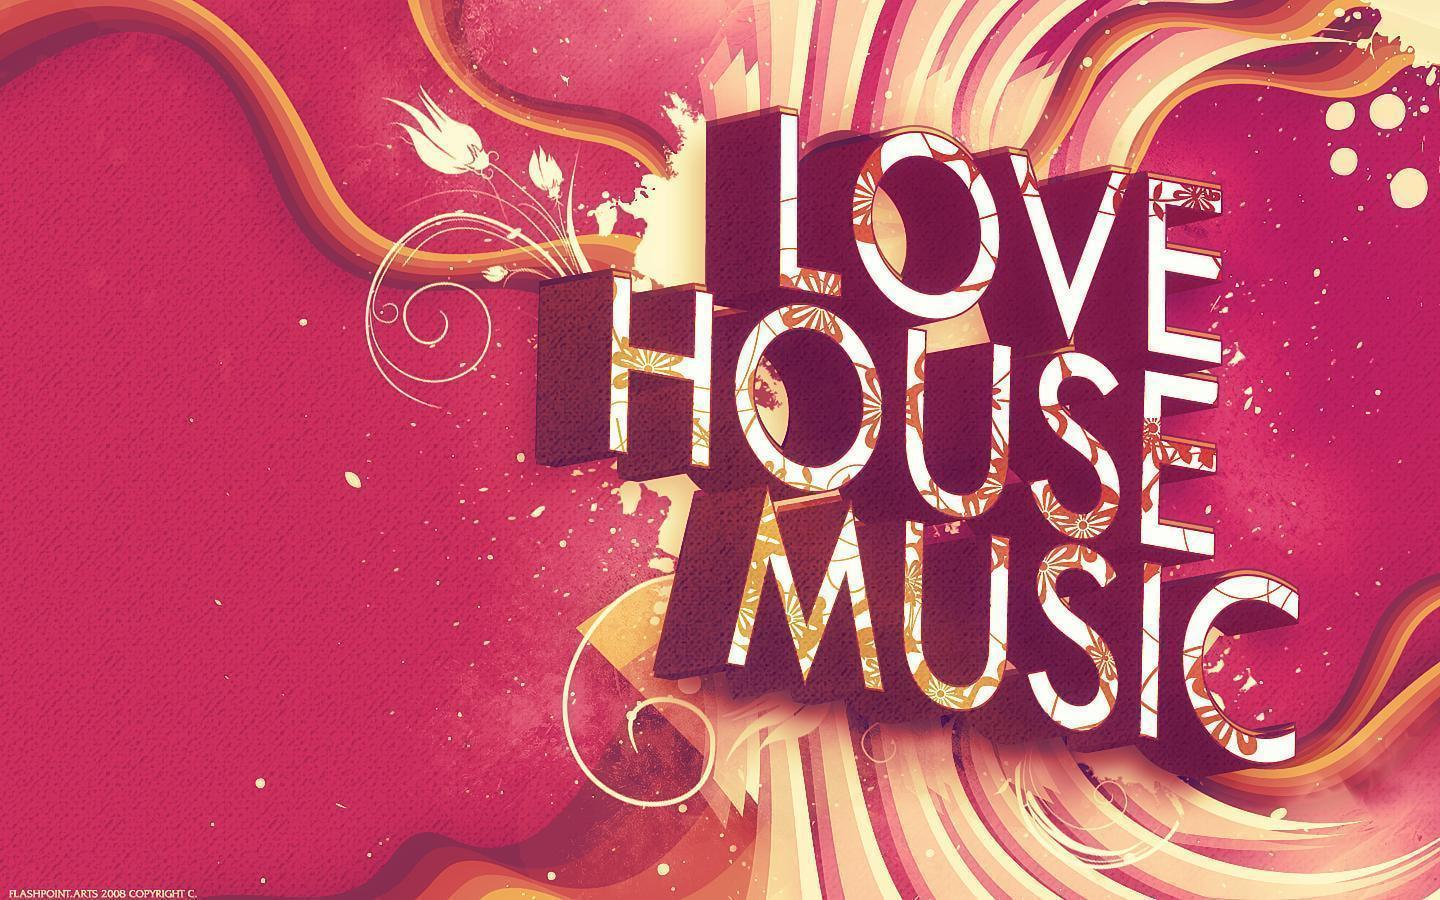 Electro house music wallpapers wallpaper cave for Best house music